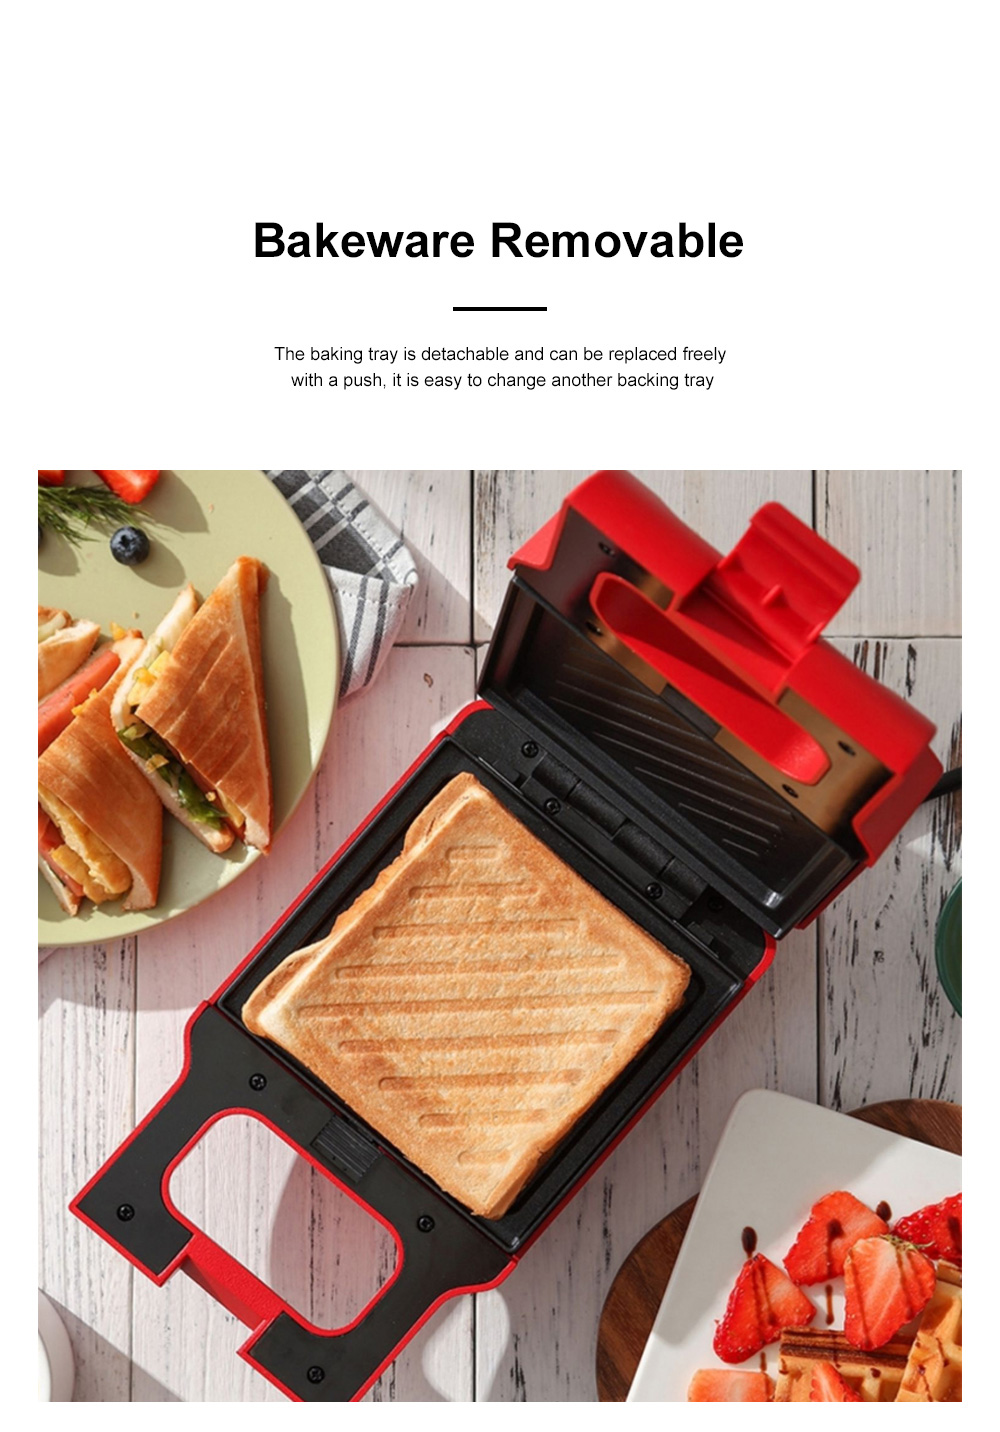 Kitchen Multifunctional Three-minute Breakfast Machine Sandwich Maker Waffle For Making Toast Bread Cookies Muffins Price 3